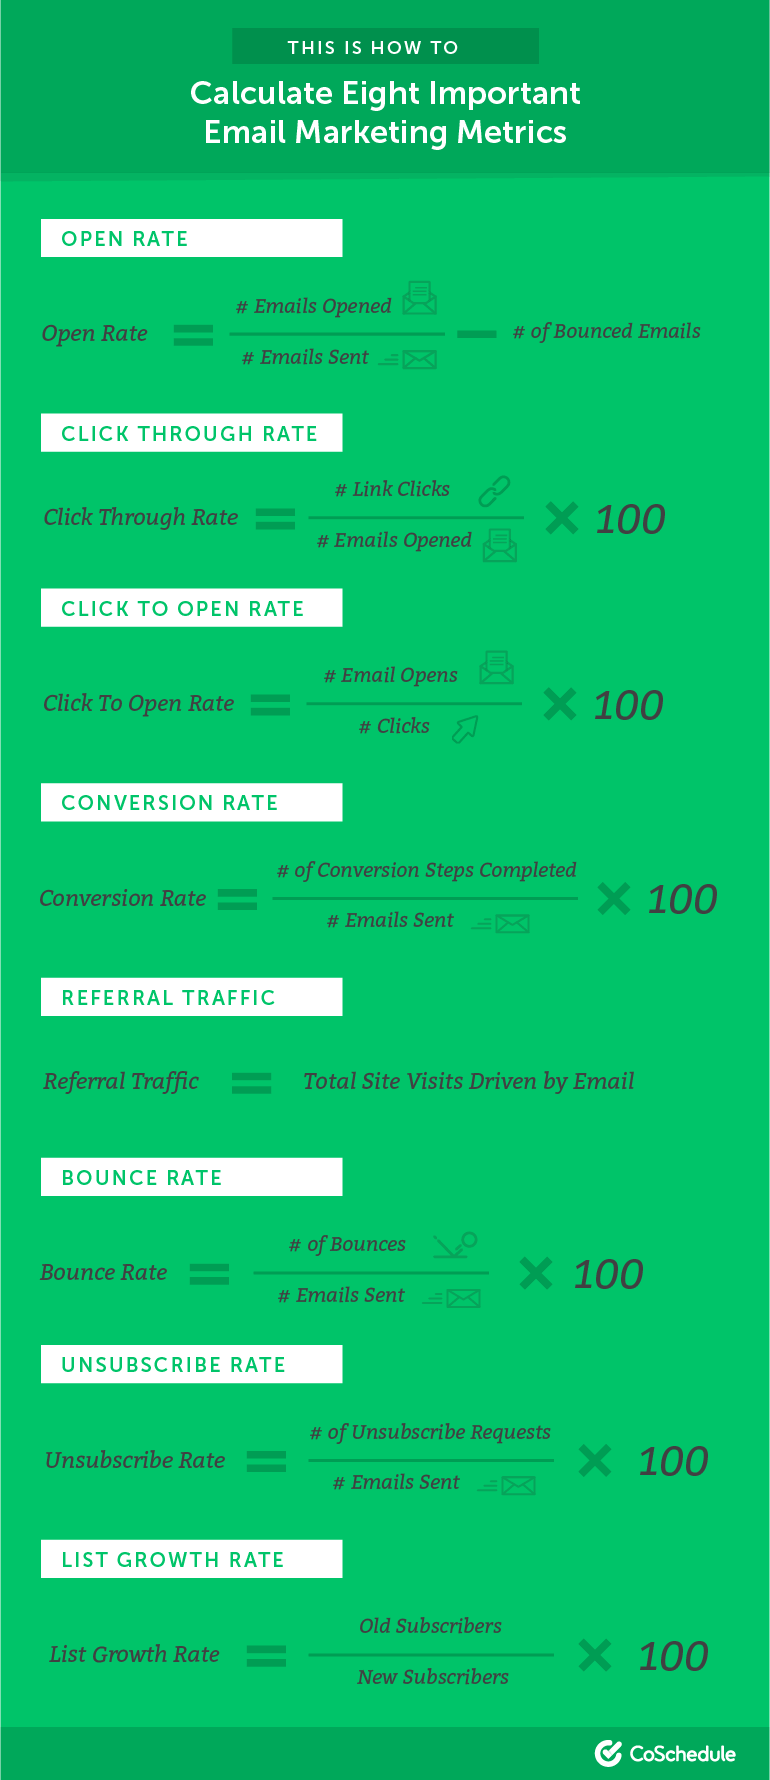 How to Calculate Eight Important Email Marketing Metrics